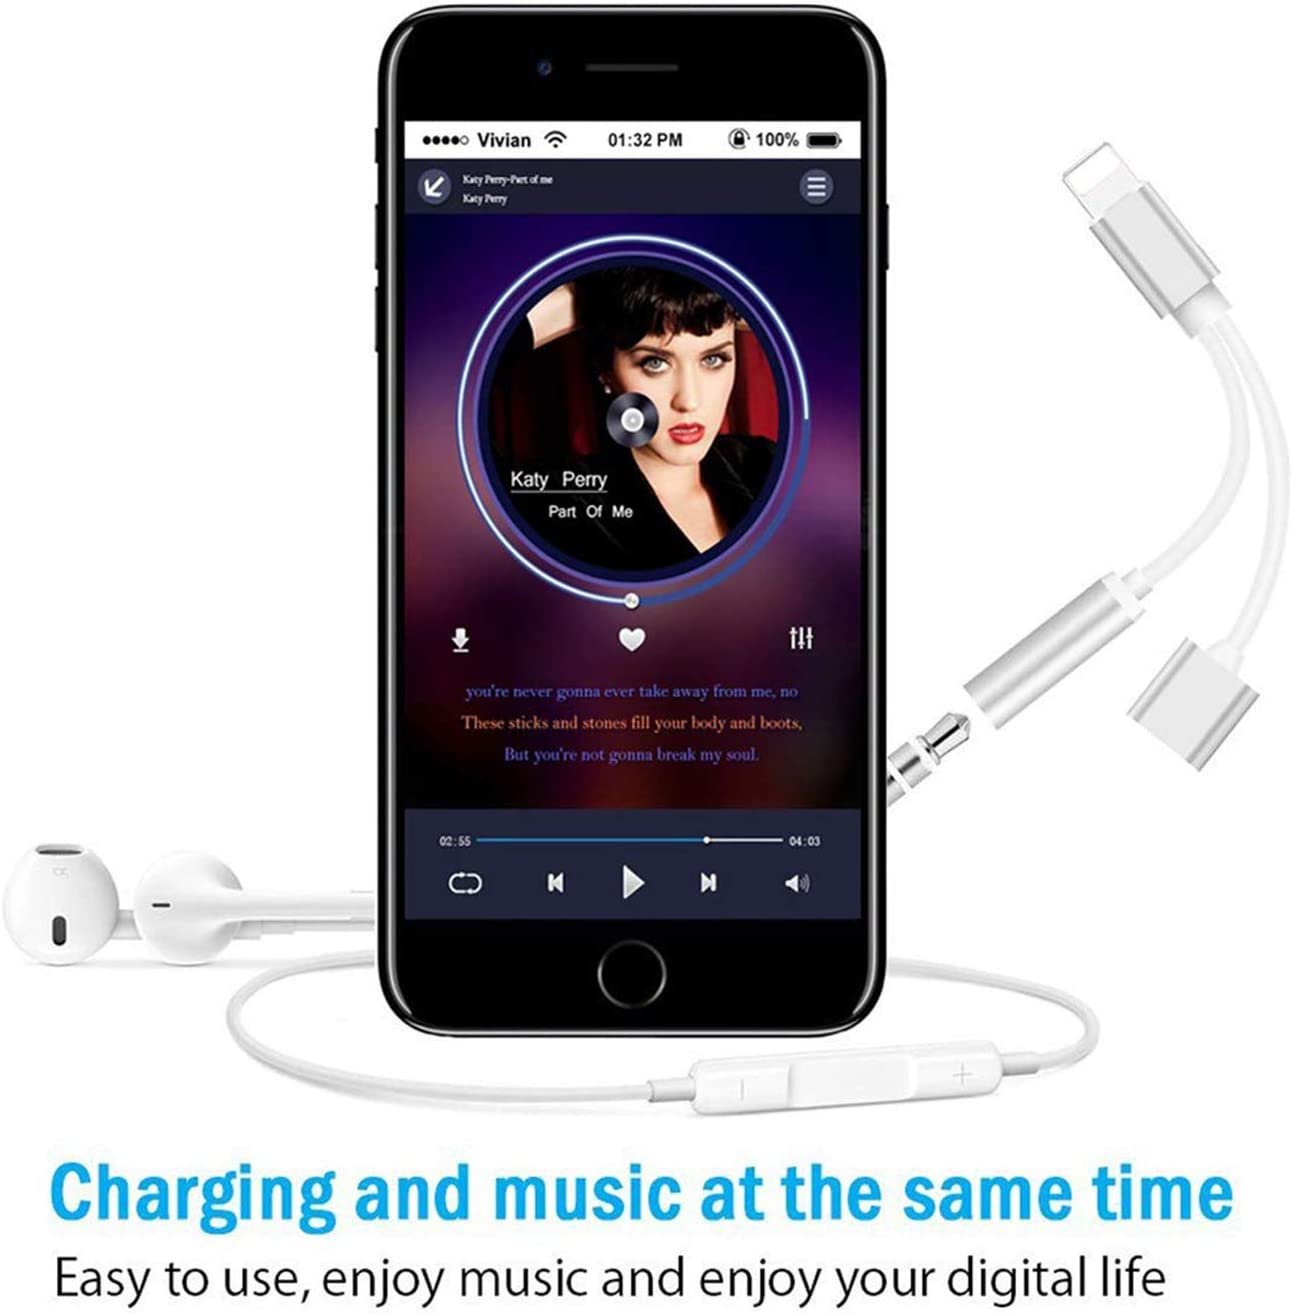 White Headphone Adapter for iPhone 8 Earphone Adapter for iPhone Adapter Headphone Jack to 3.5mm Headphone AUX Audio Jack Adapter Compatible for iPhone 7//7P//8//8P//X//XR//XS//XS Max//11 Support All iOS